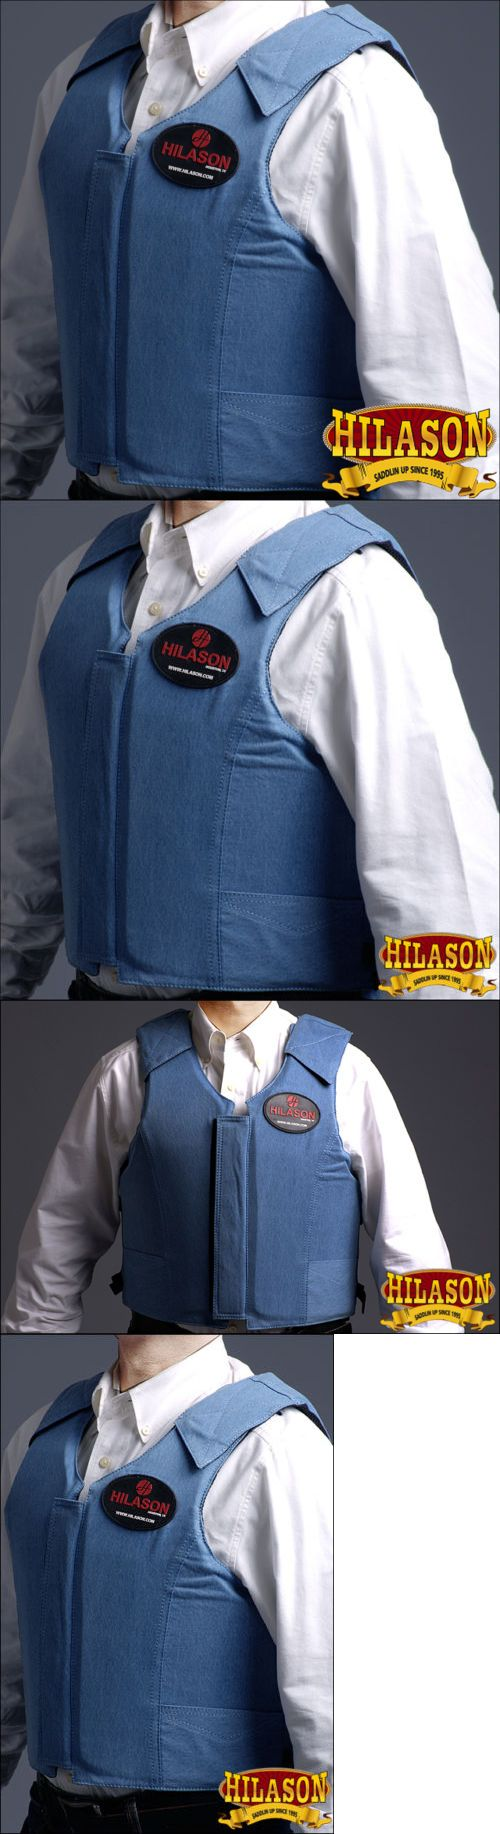 Other Protective Gear 87446: Pv102- Hilason Denim Bareback Pro Rodeo Bull Riding Protective Vest Blue -> BUY IT NOW ONLY: $119.99 on eBay!